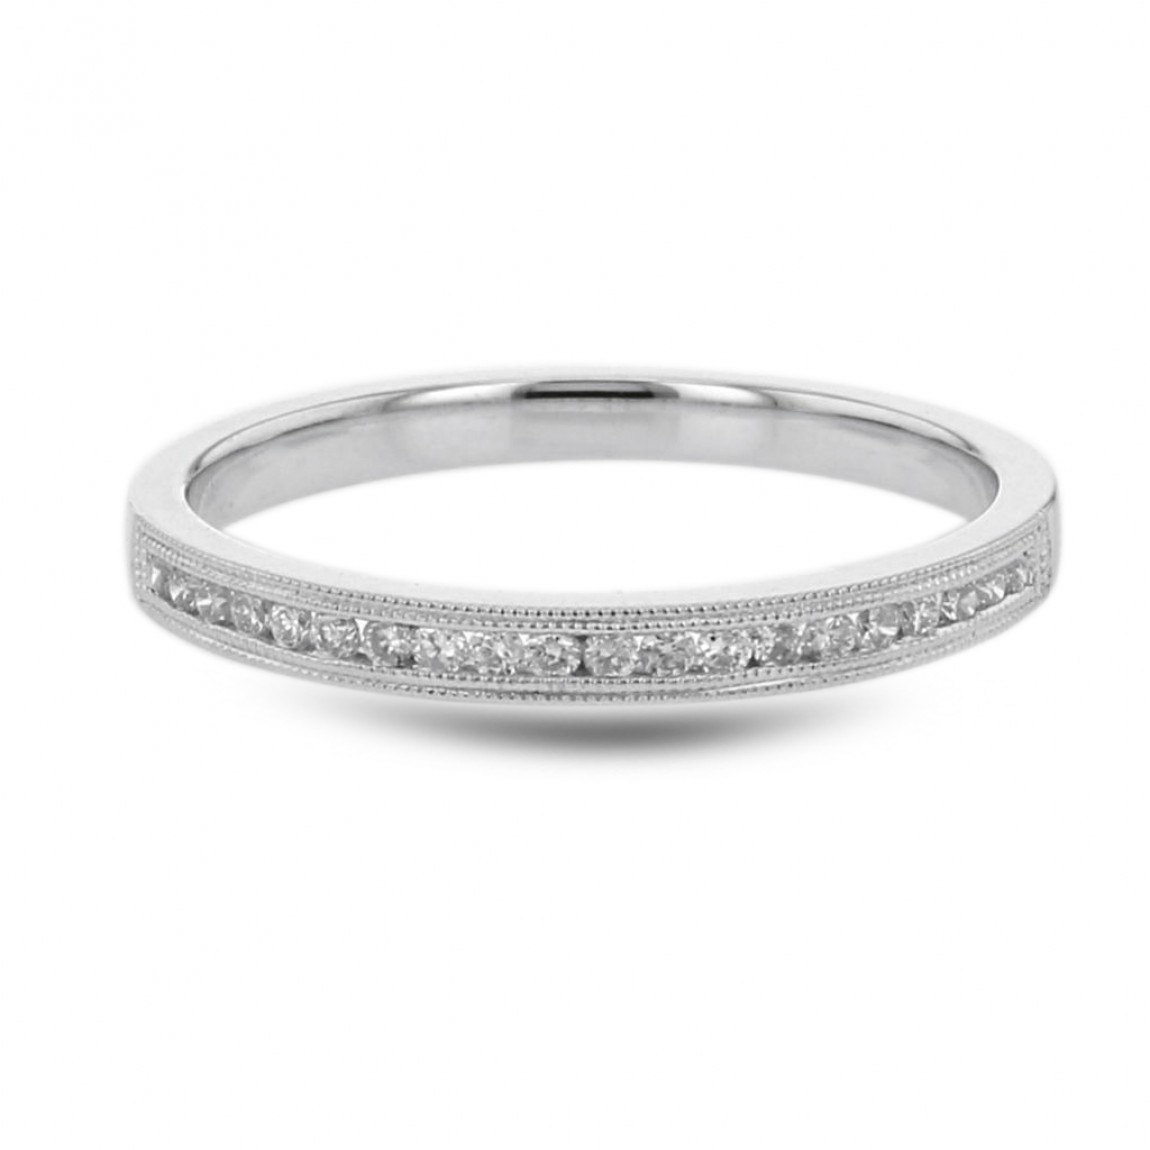 Diamond Wedding Anniversary Band, Milgrain Channel Ring, 14k White Gold, (View 4 of 25)